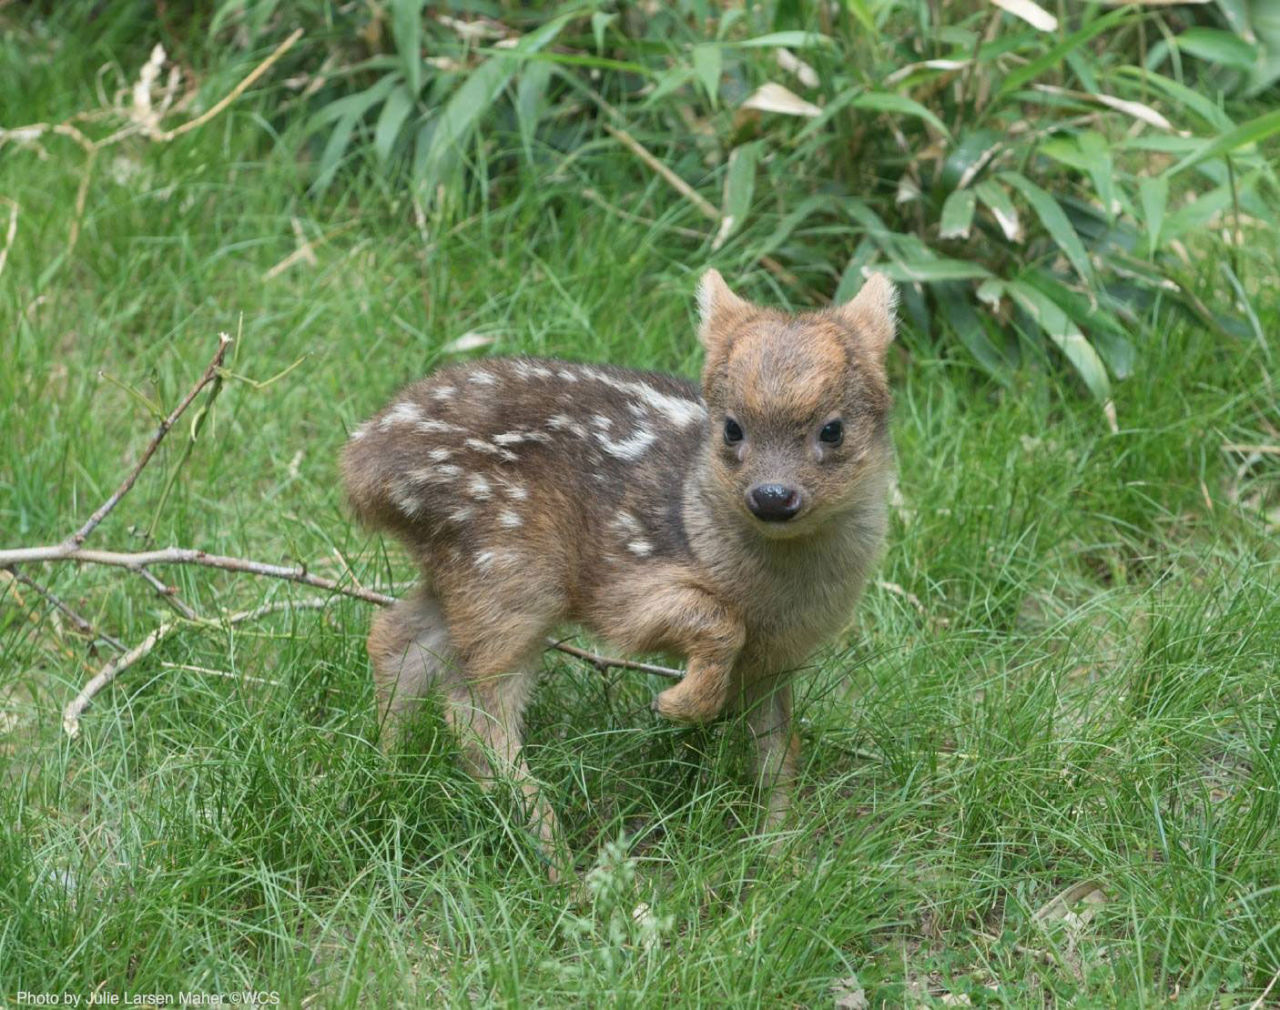 Bah! Obsessed! This is the world's tiniest deer!